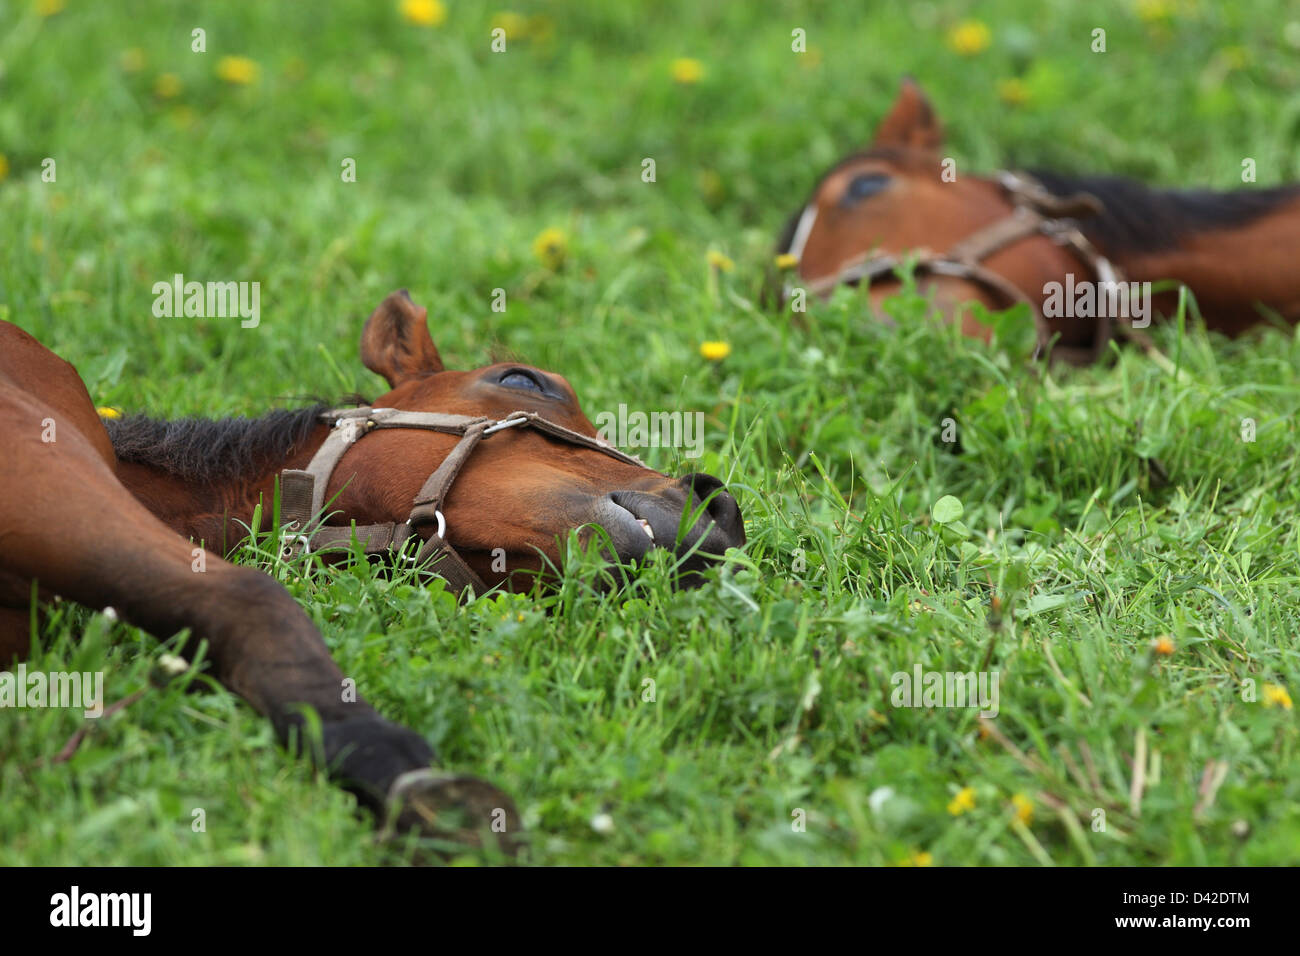 Görlsdorf, Germany, horses are in a deep sleep on the pasture - Stock Image